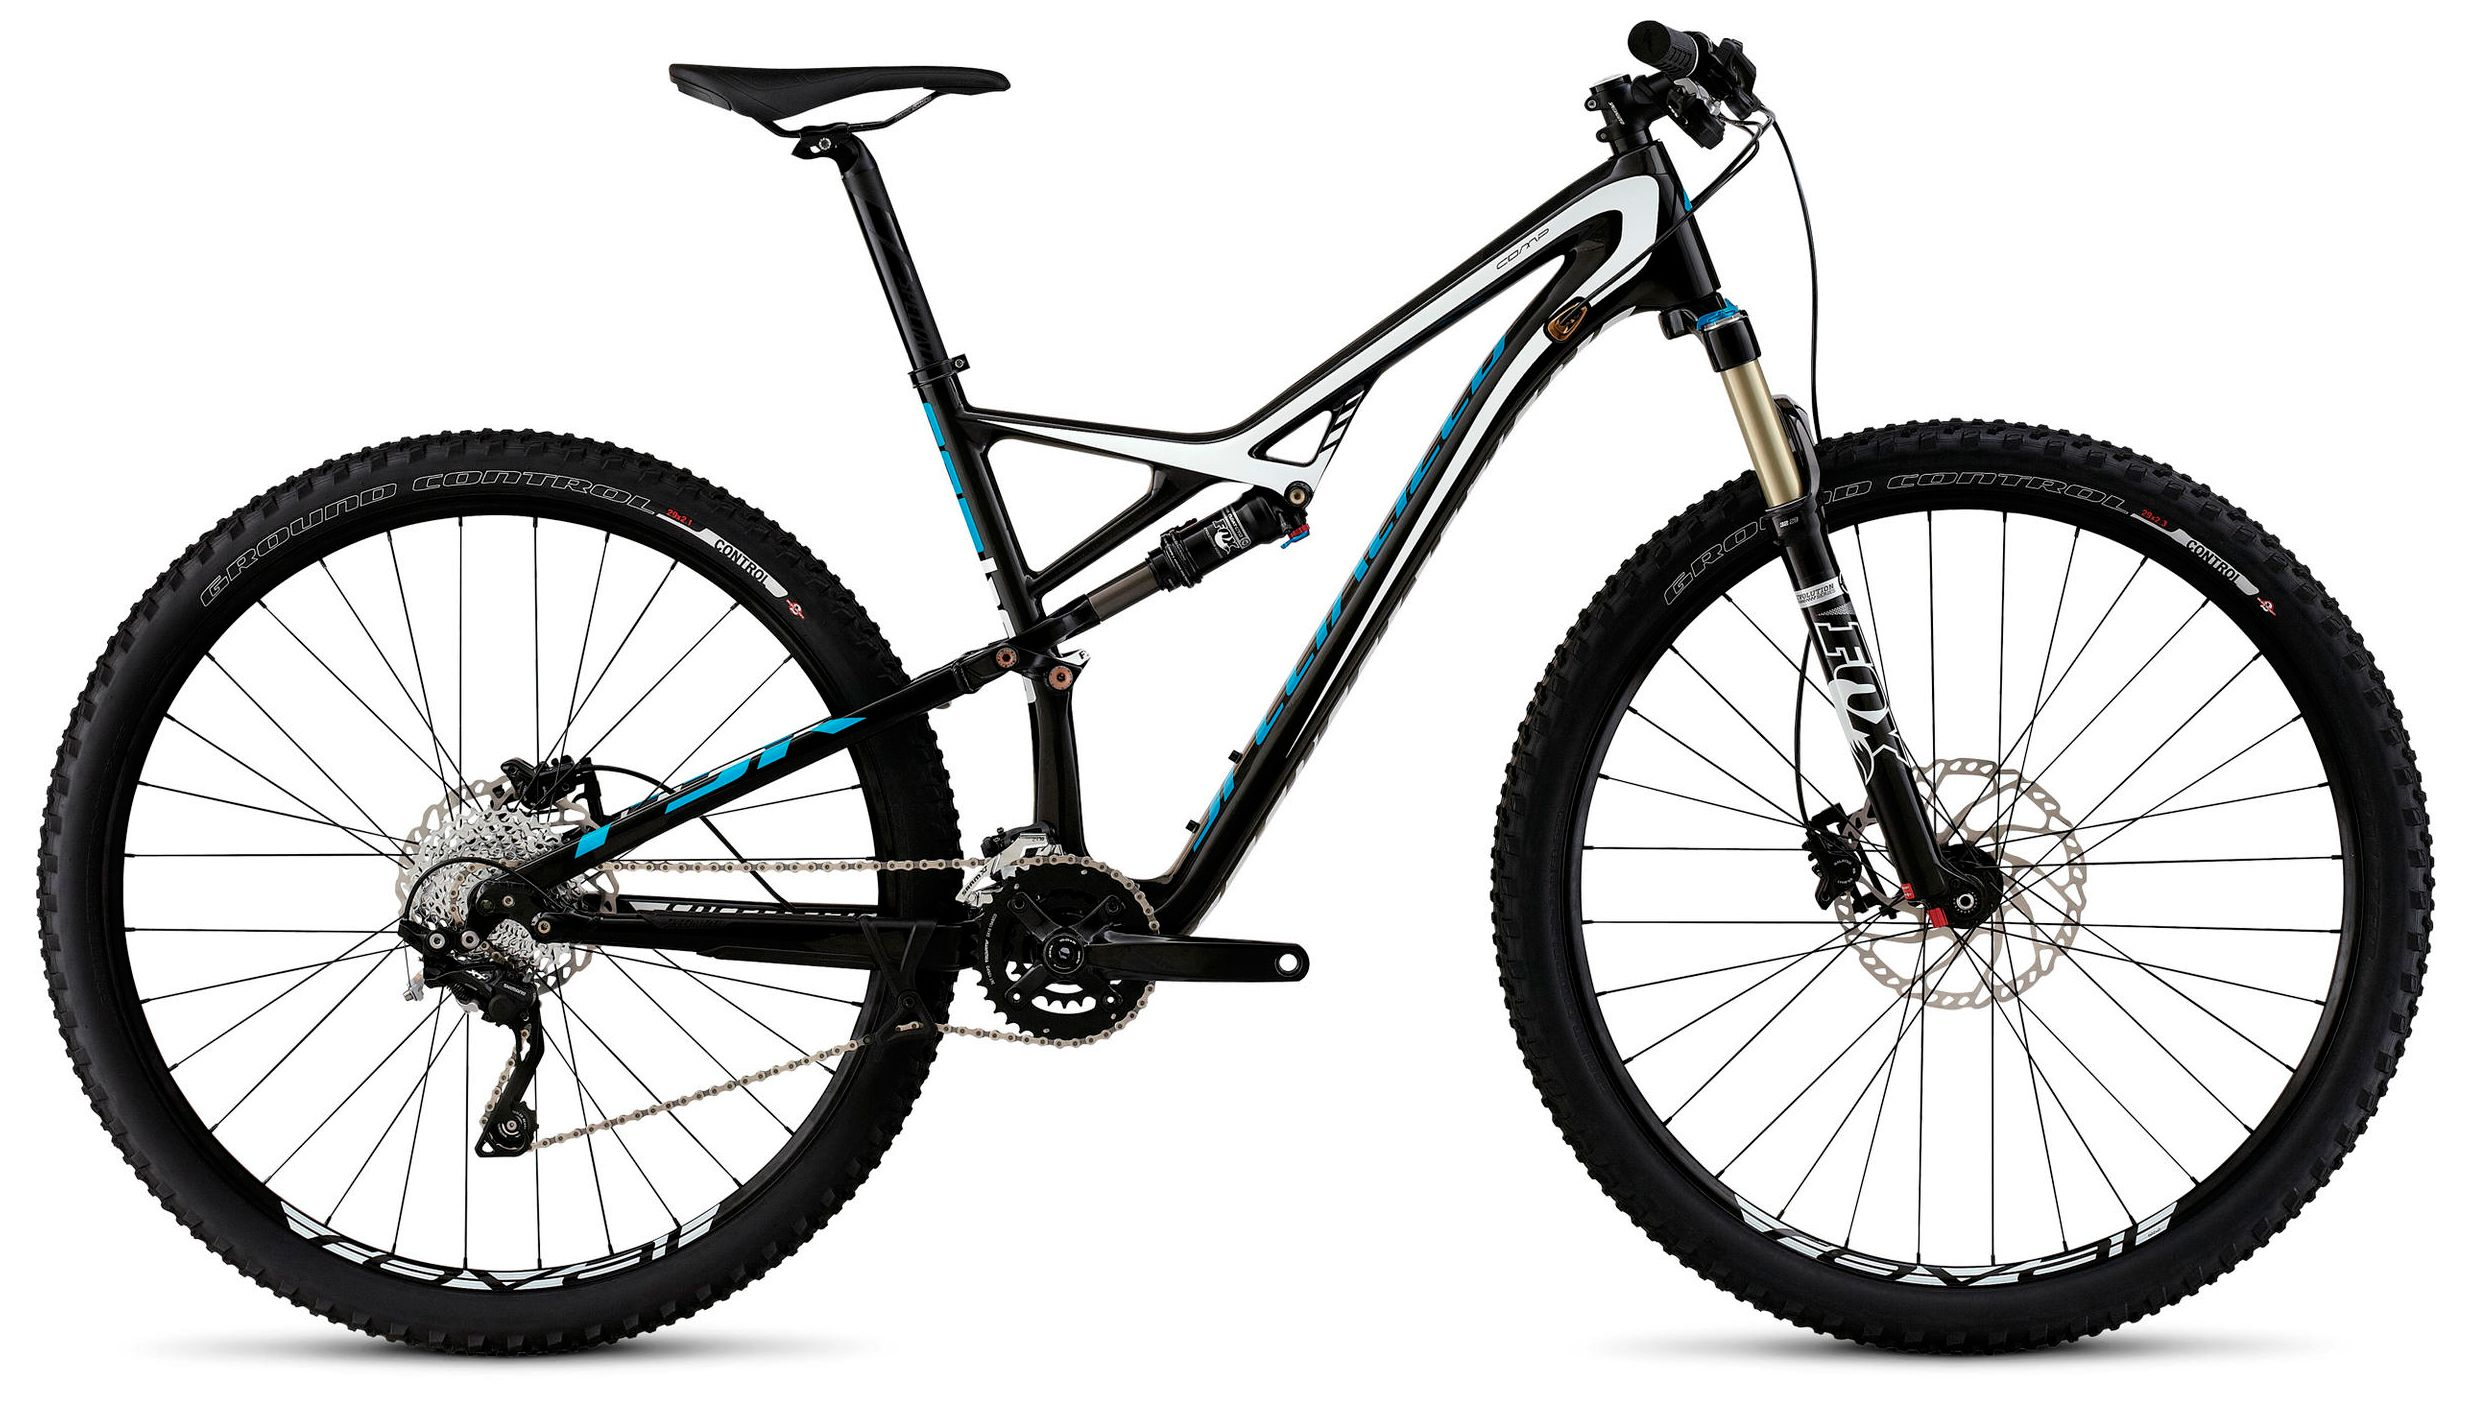 Велосипед Specialized Camber Comp Carbon 29 2016 велосипед specialized crave comp 29 2014